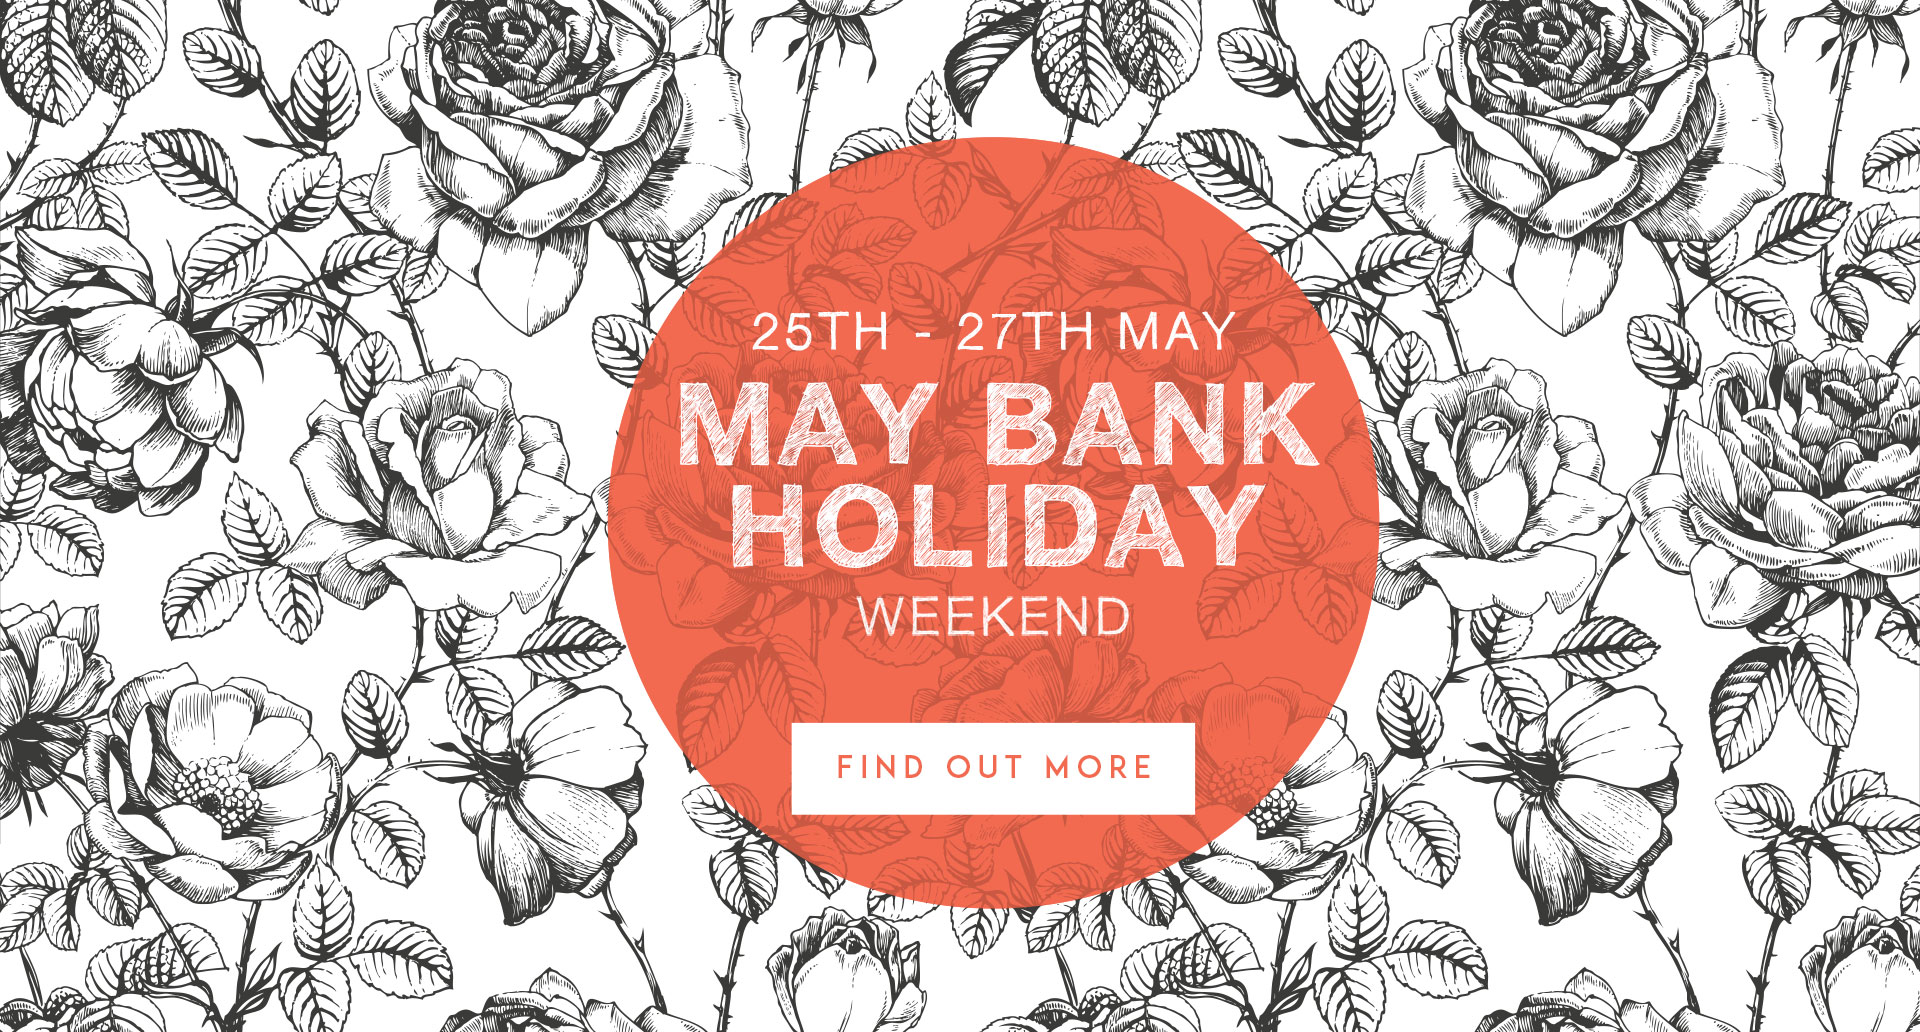 May Bank Holiday at Crown & Greyhound